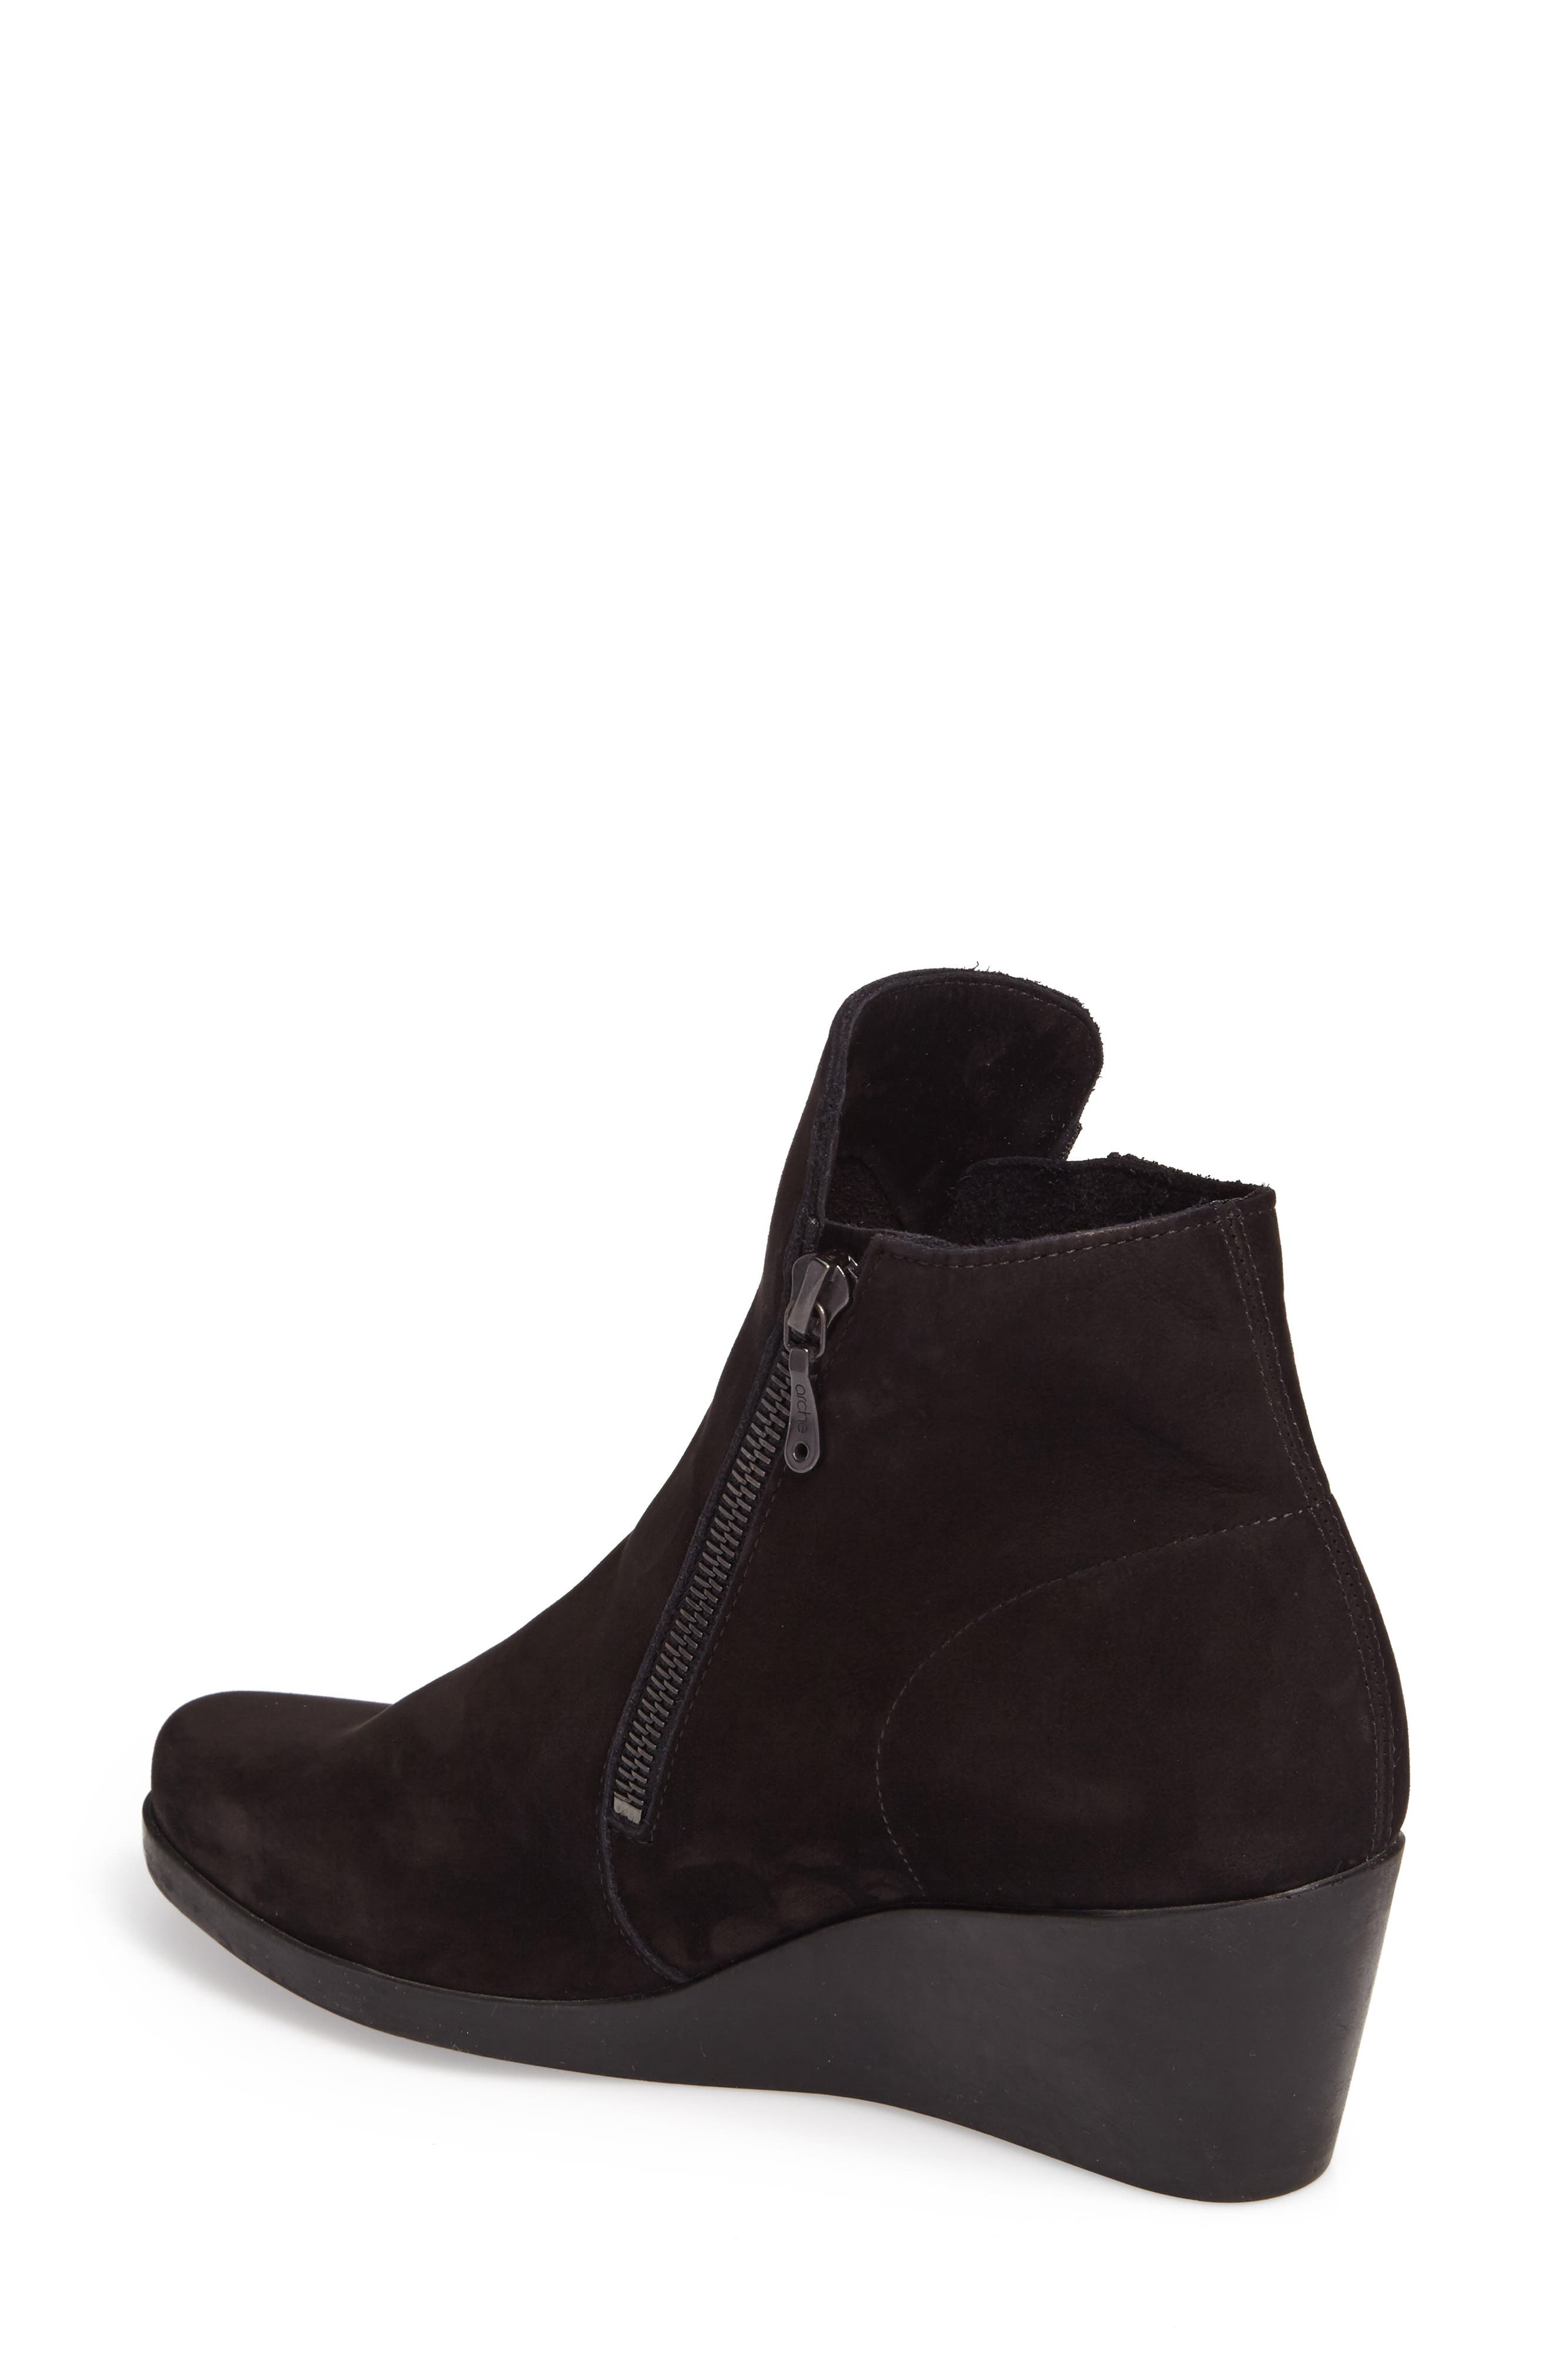 Alternate Image 2  - Arche Jolia Water Resistant Bootie (Women)